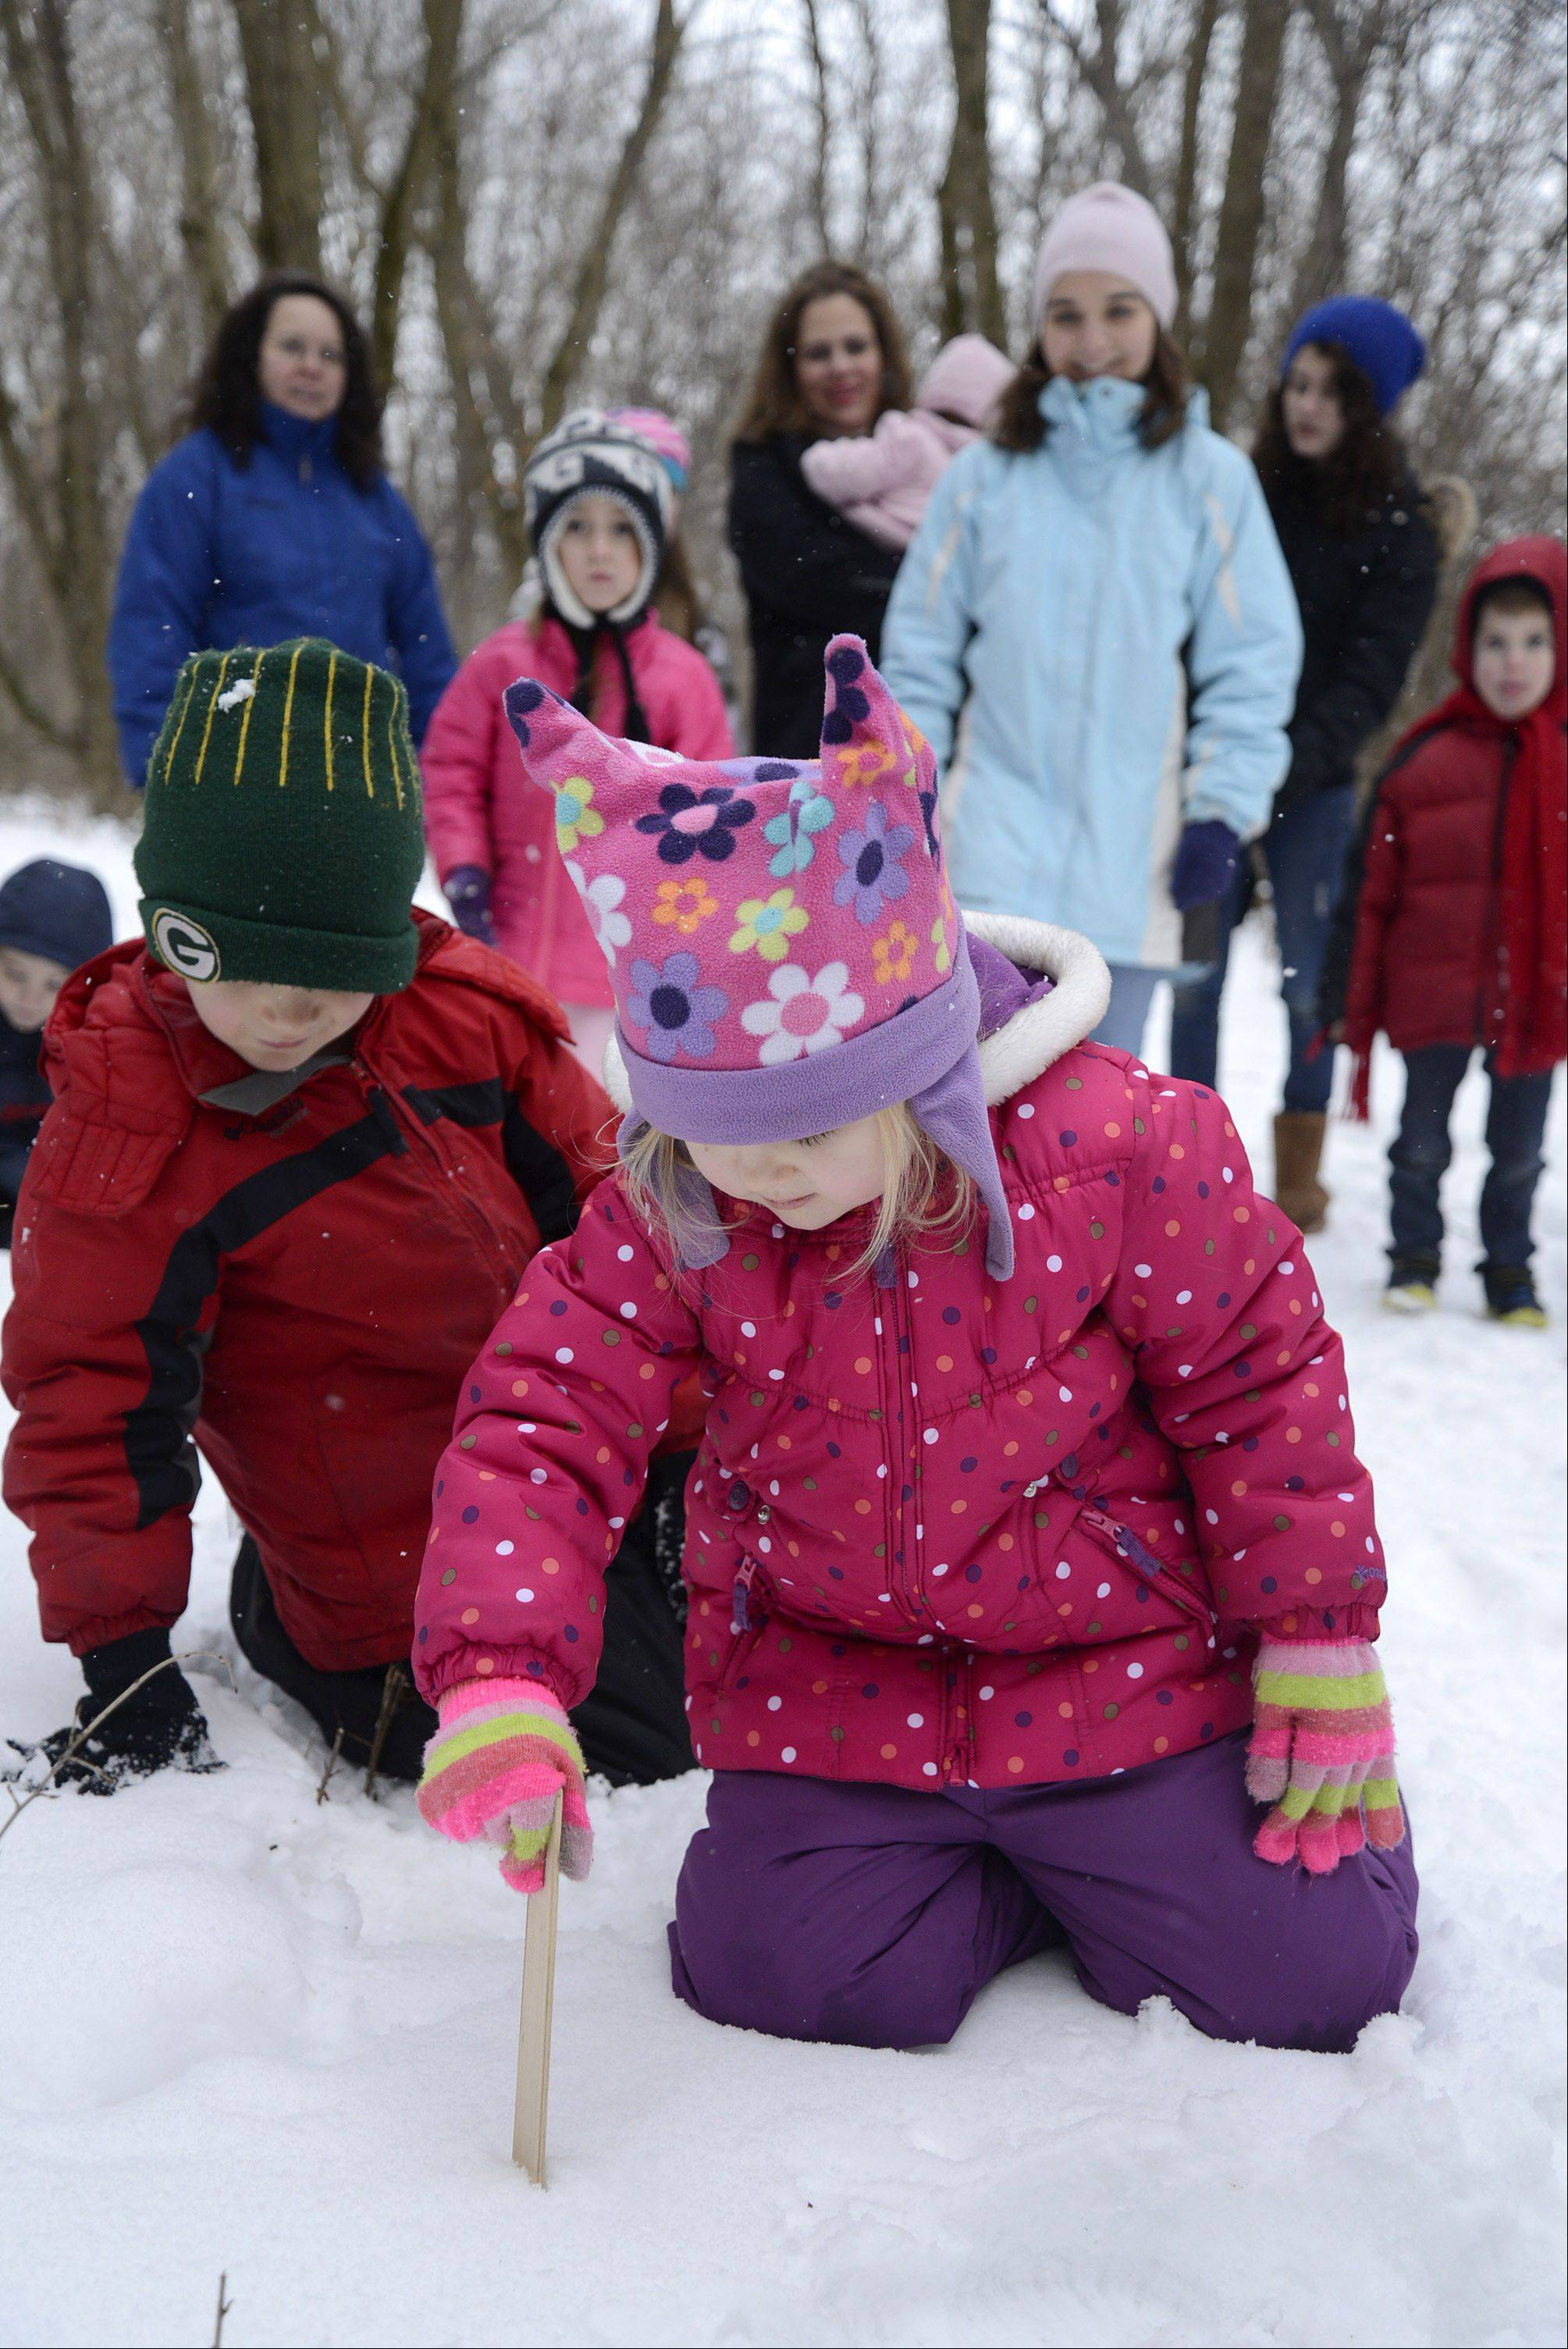 Kathleen Seckel, 5, of St. Charles and her brother, Joe, 7, use a ruler to measure a 5-inch snowdrift during the Homeschool Explorations: The Science of Snow program Thursday in St. Charles. The siblings just started home schooling last week and this was their first time attending one of the programs offered by the forest preserve district.